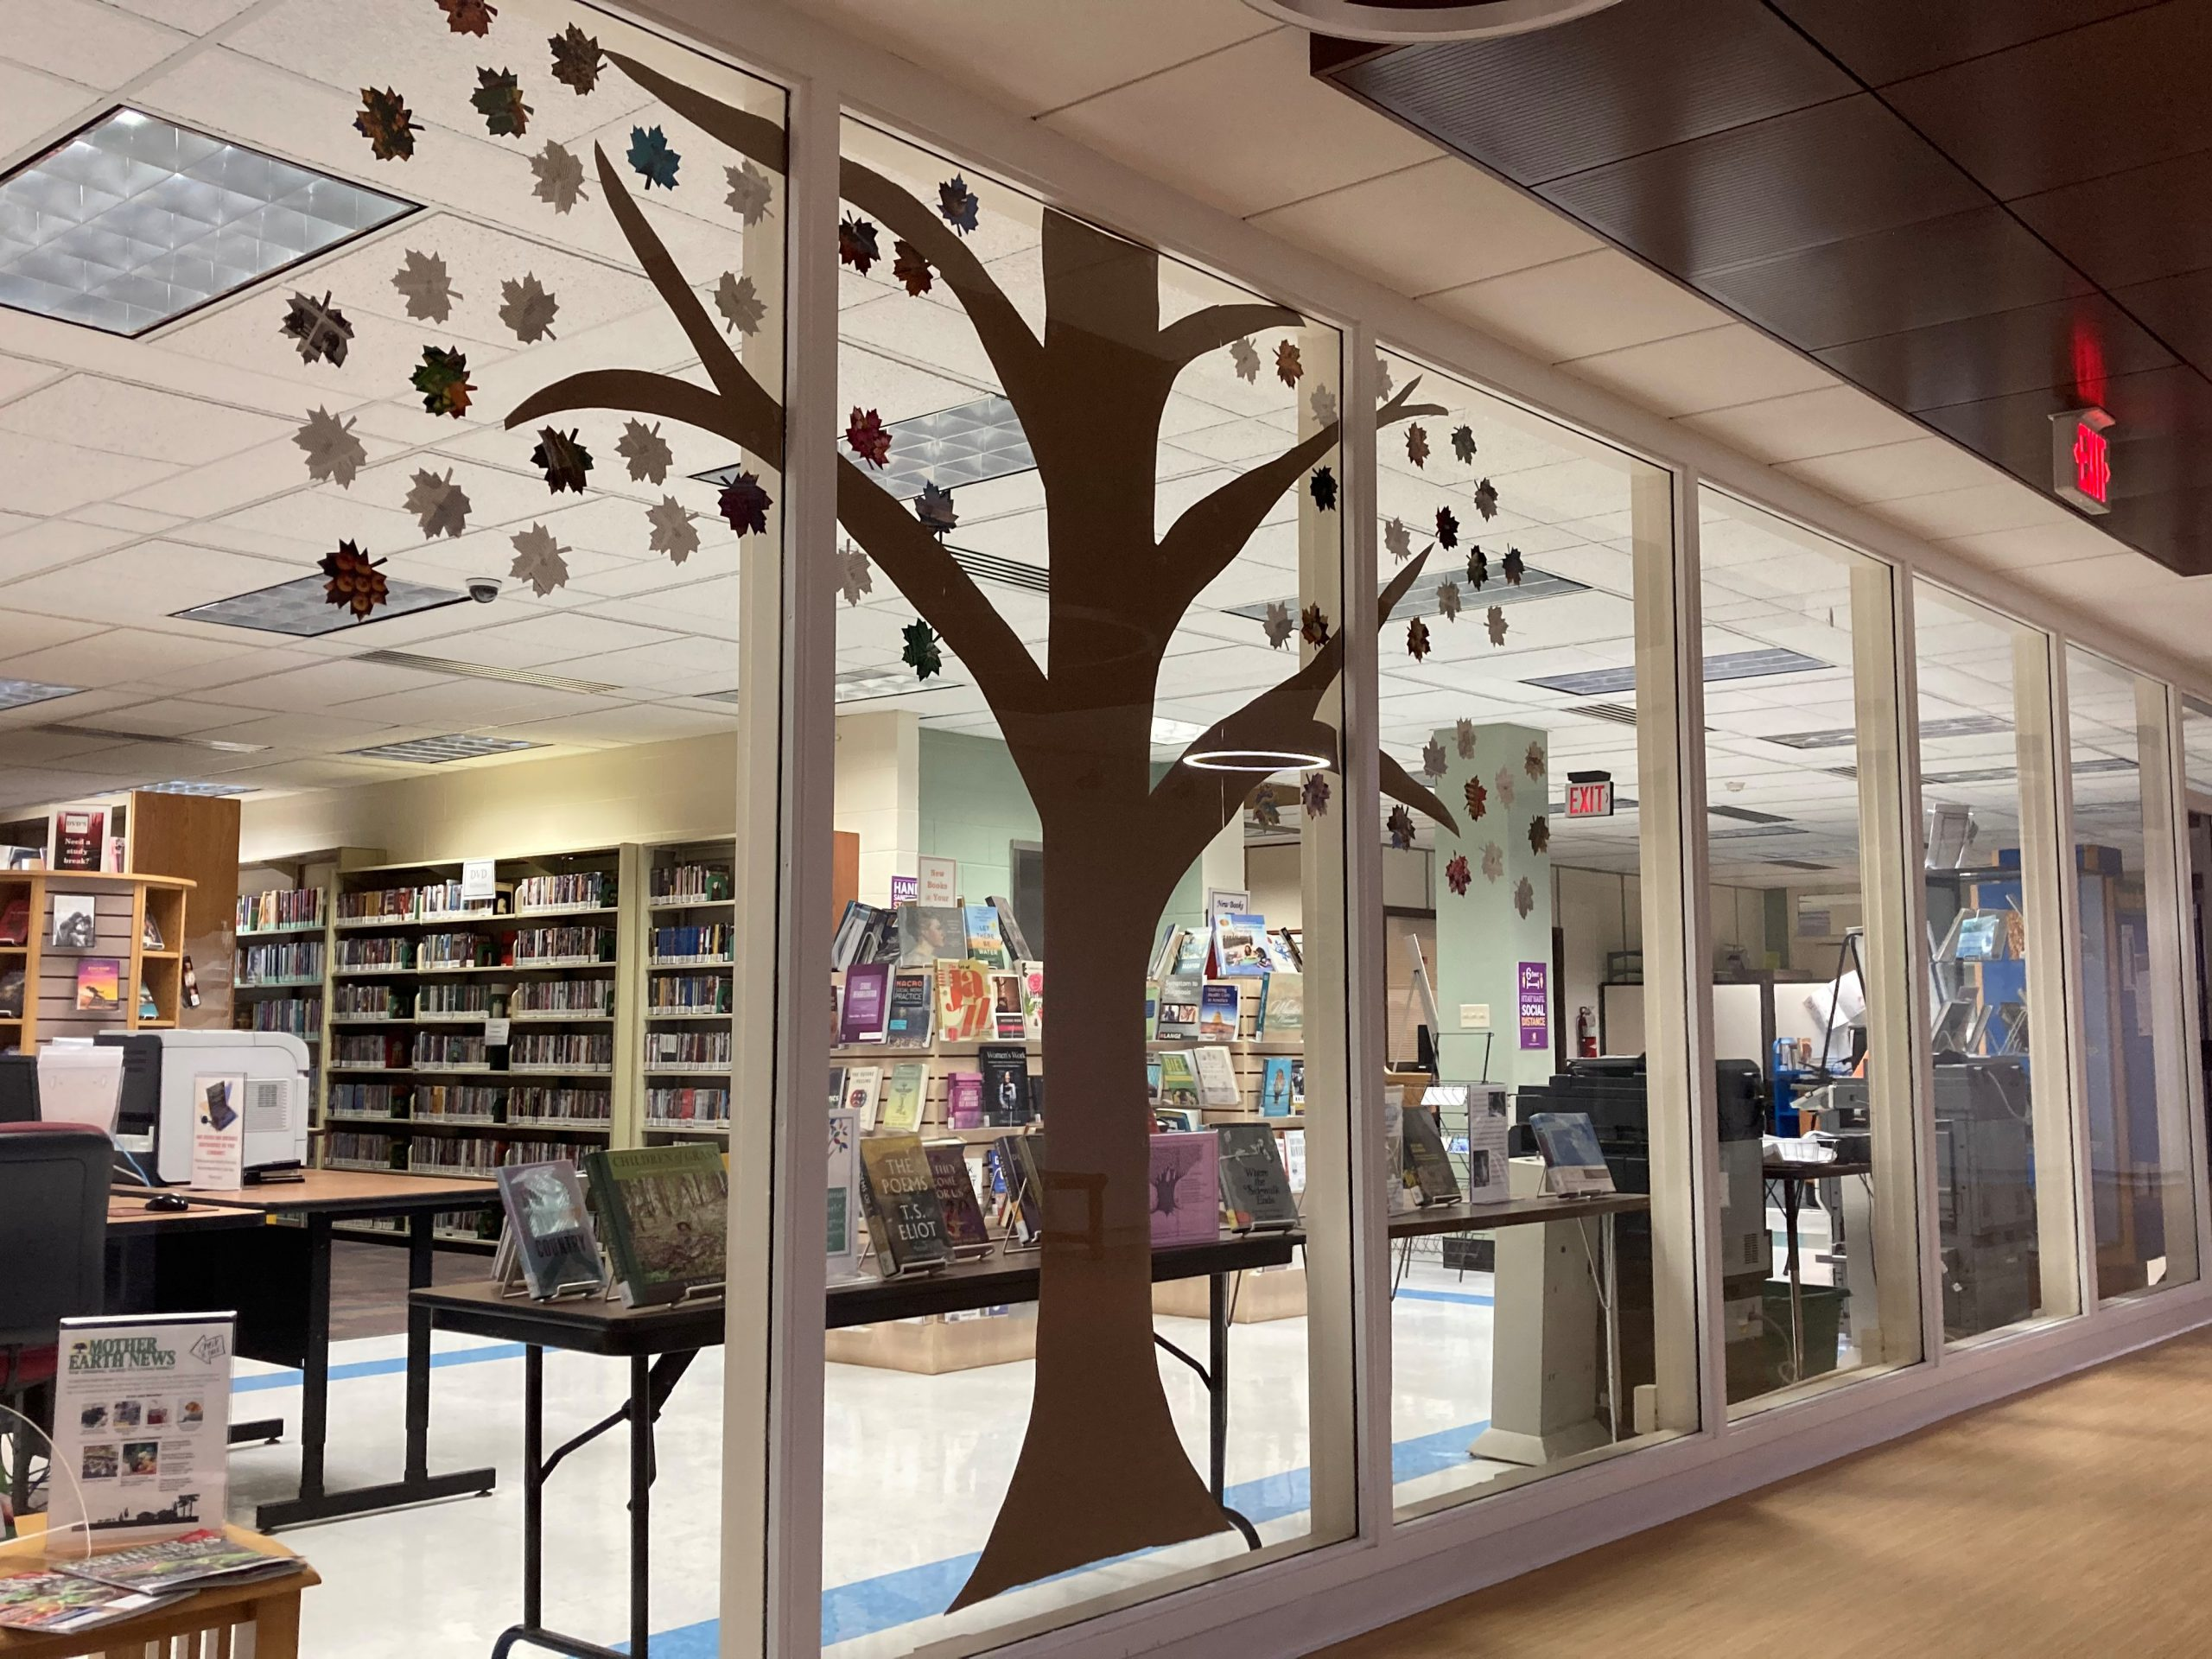 A construction paper tree with the names of poetry books on the leaves displayed in a library window